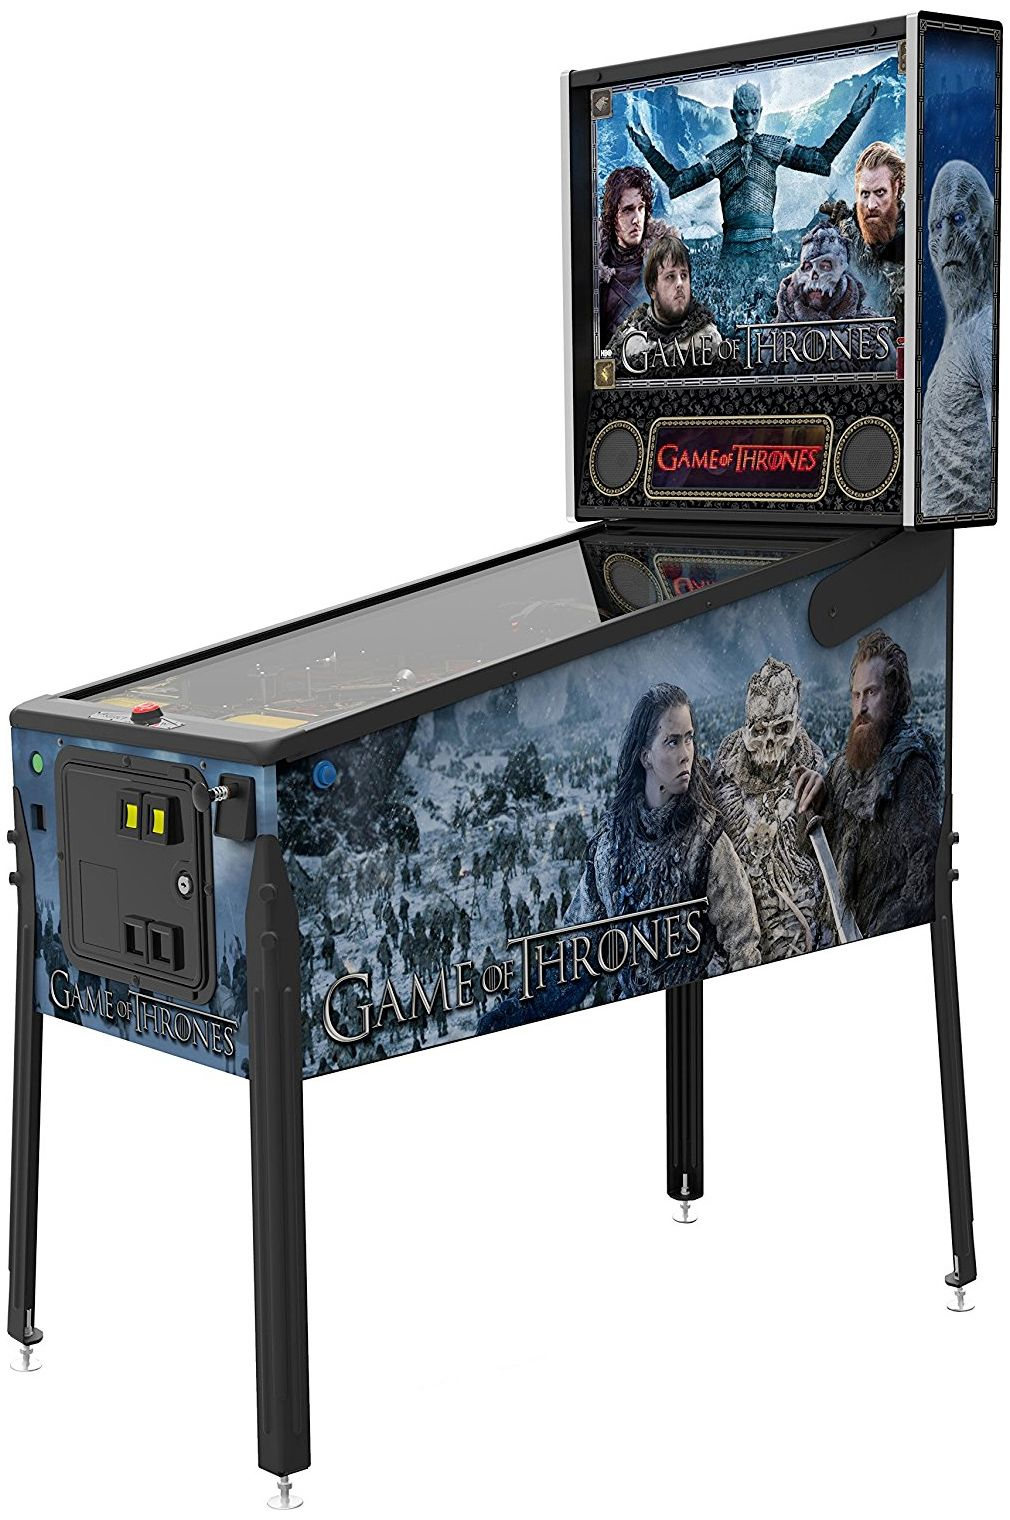 Game-of-Thrones-Pinball-Premium-Arcade-Pinball-Machine-03